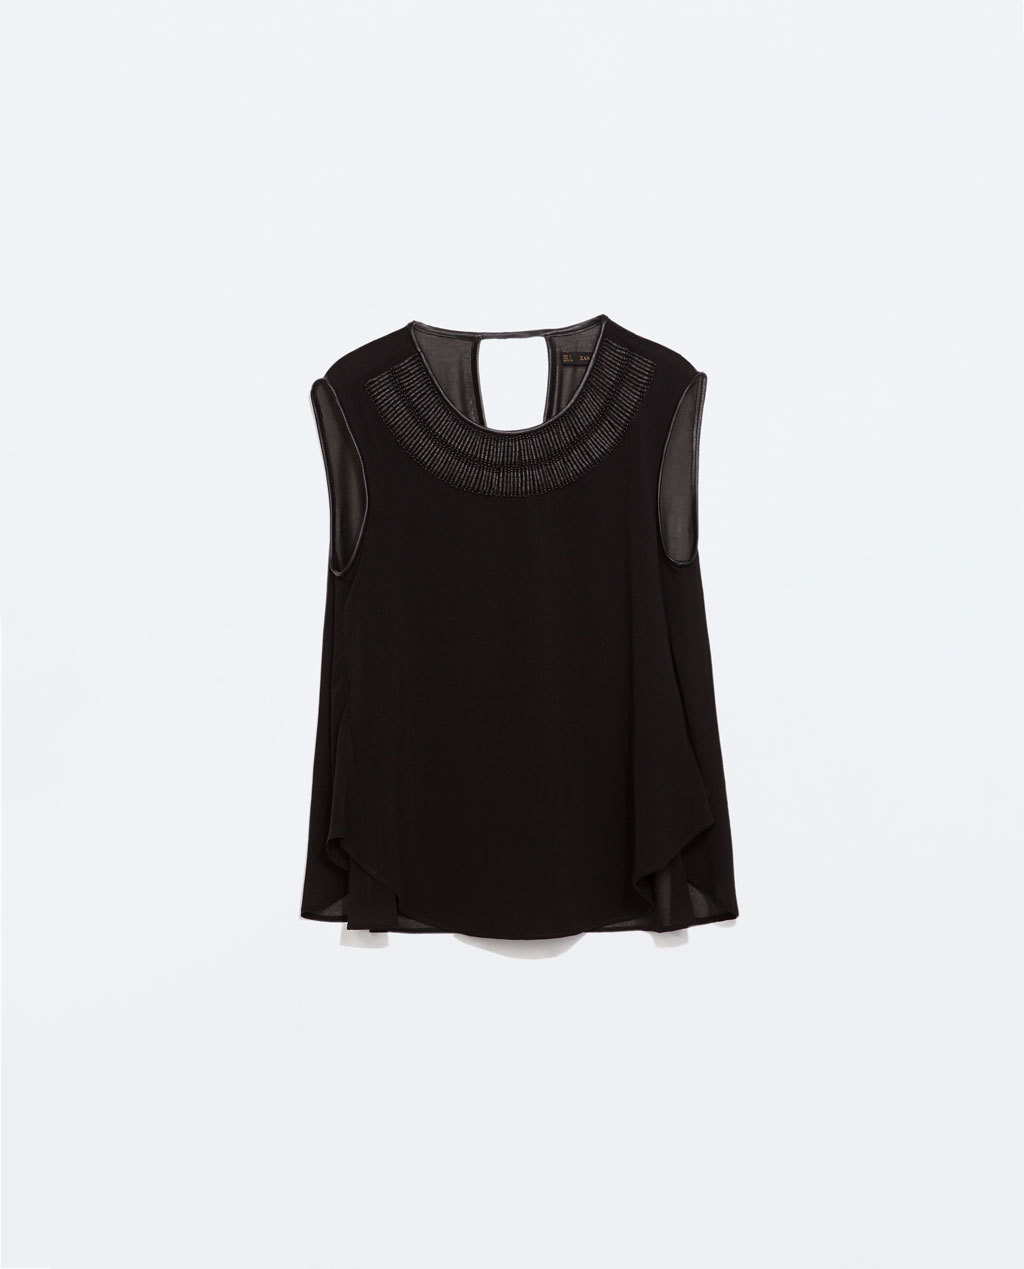 Top With AppliquÉ On Collar - neckline: round neck; pattern: plain; sleeve style: sleeveless; bust detail: added detail/embellishment at bust; predominant colour: black; occasions: evening, creative work; length: standard; style: top; fibres: polyester/polyamide - 100%; fit: loose; back detail: keyhole/peephole detail at back; sleeve length: sleeveless; texture group: sheer fabrics/chiffon/organza etc.; pattern type: fabric; embellishment: beading; season: a/w 2014